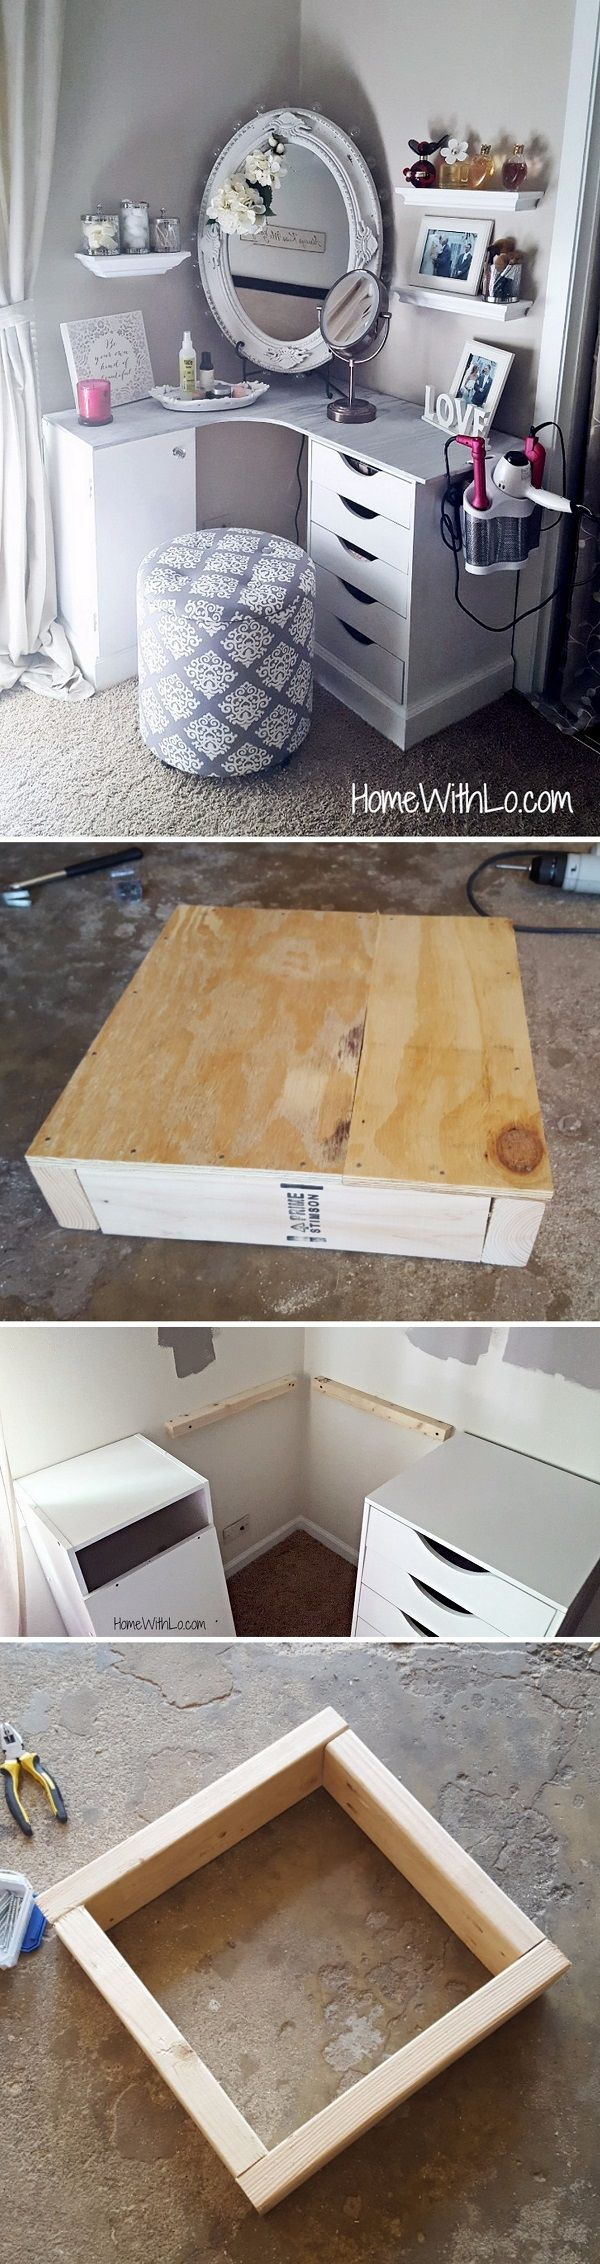 Check out the tutorial how to make a DIY plywood makeup vanity @istandarddesign